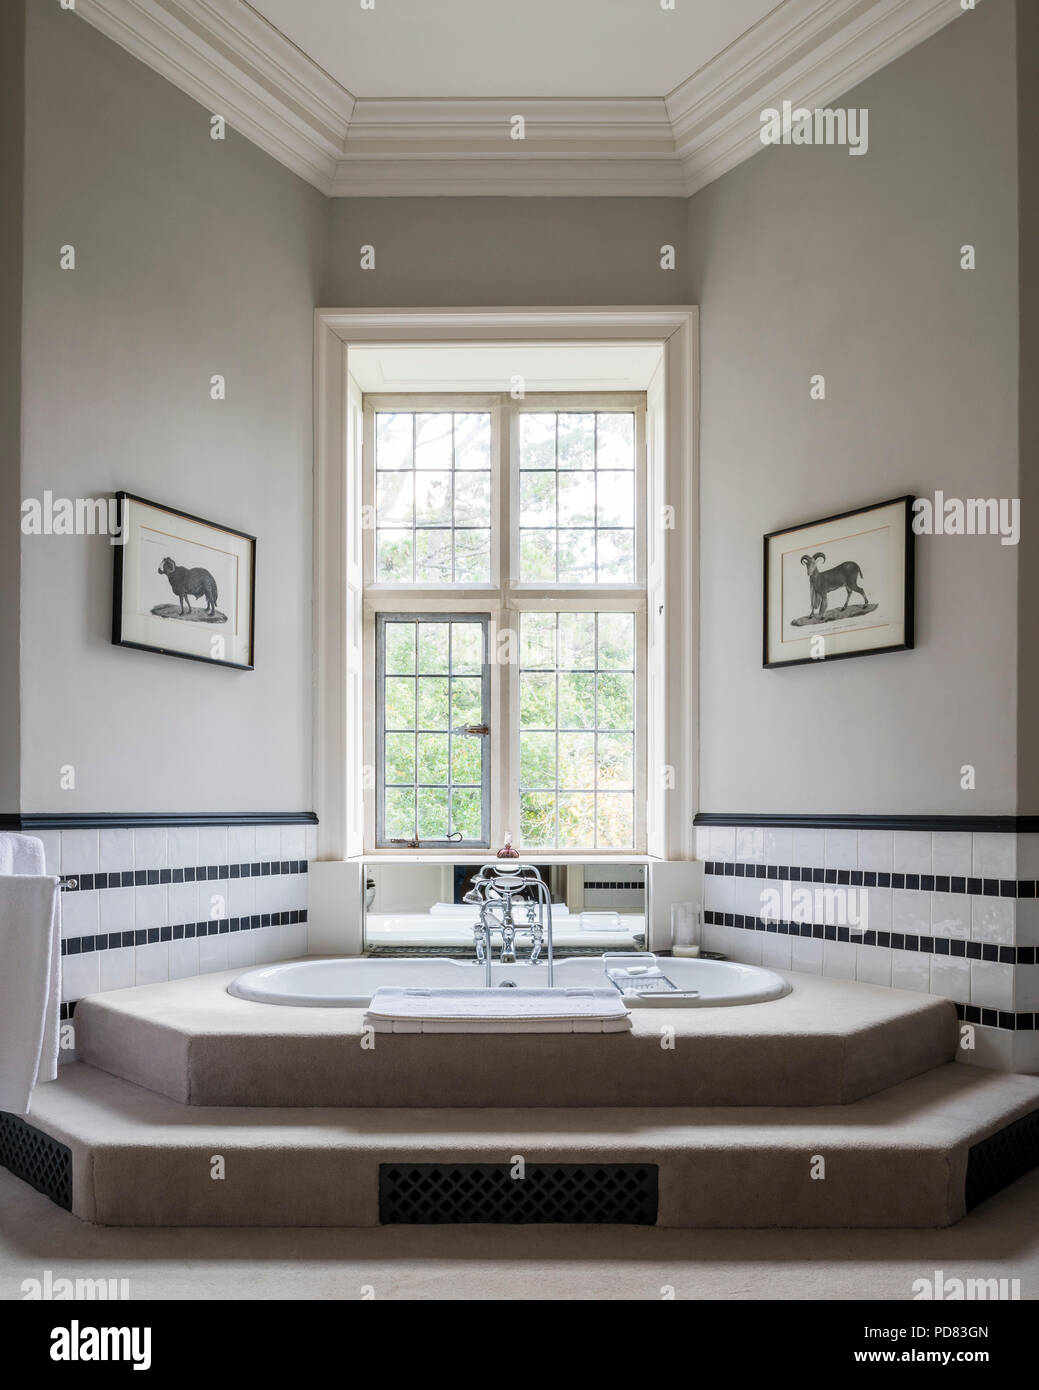 Luxury master bathroom with step up tub and black and white wall tiling Stock Photo